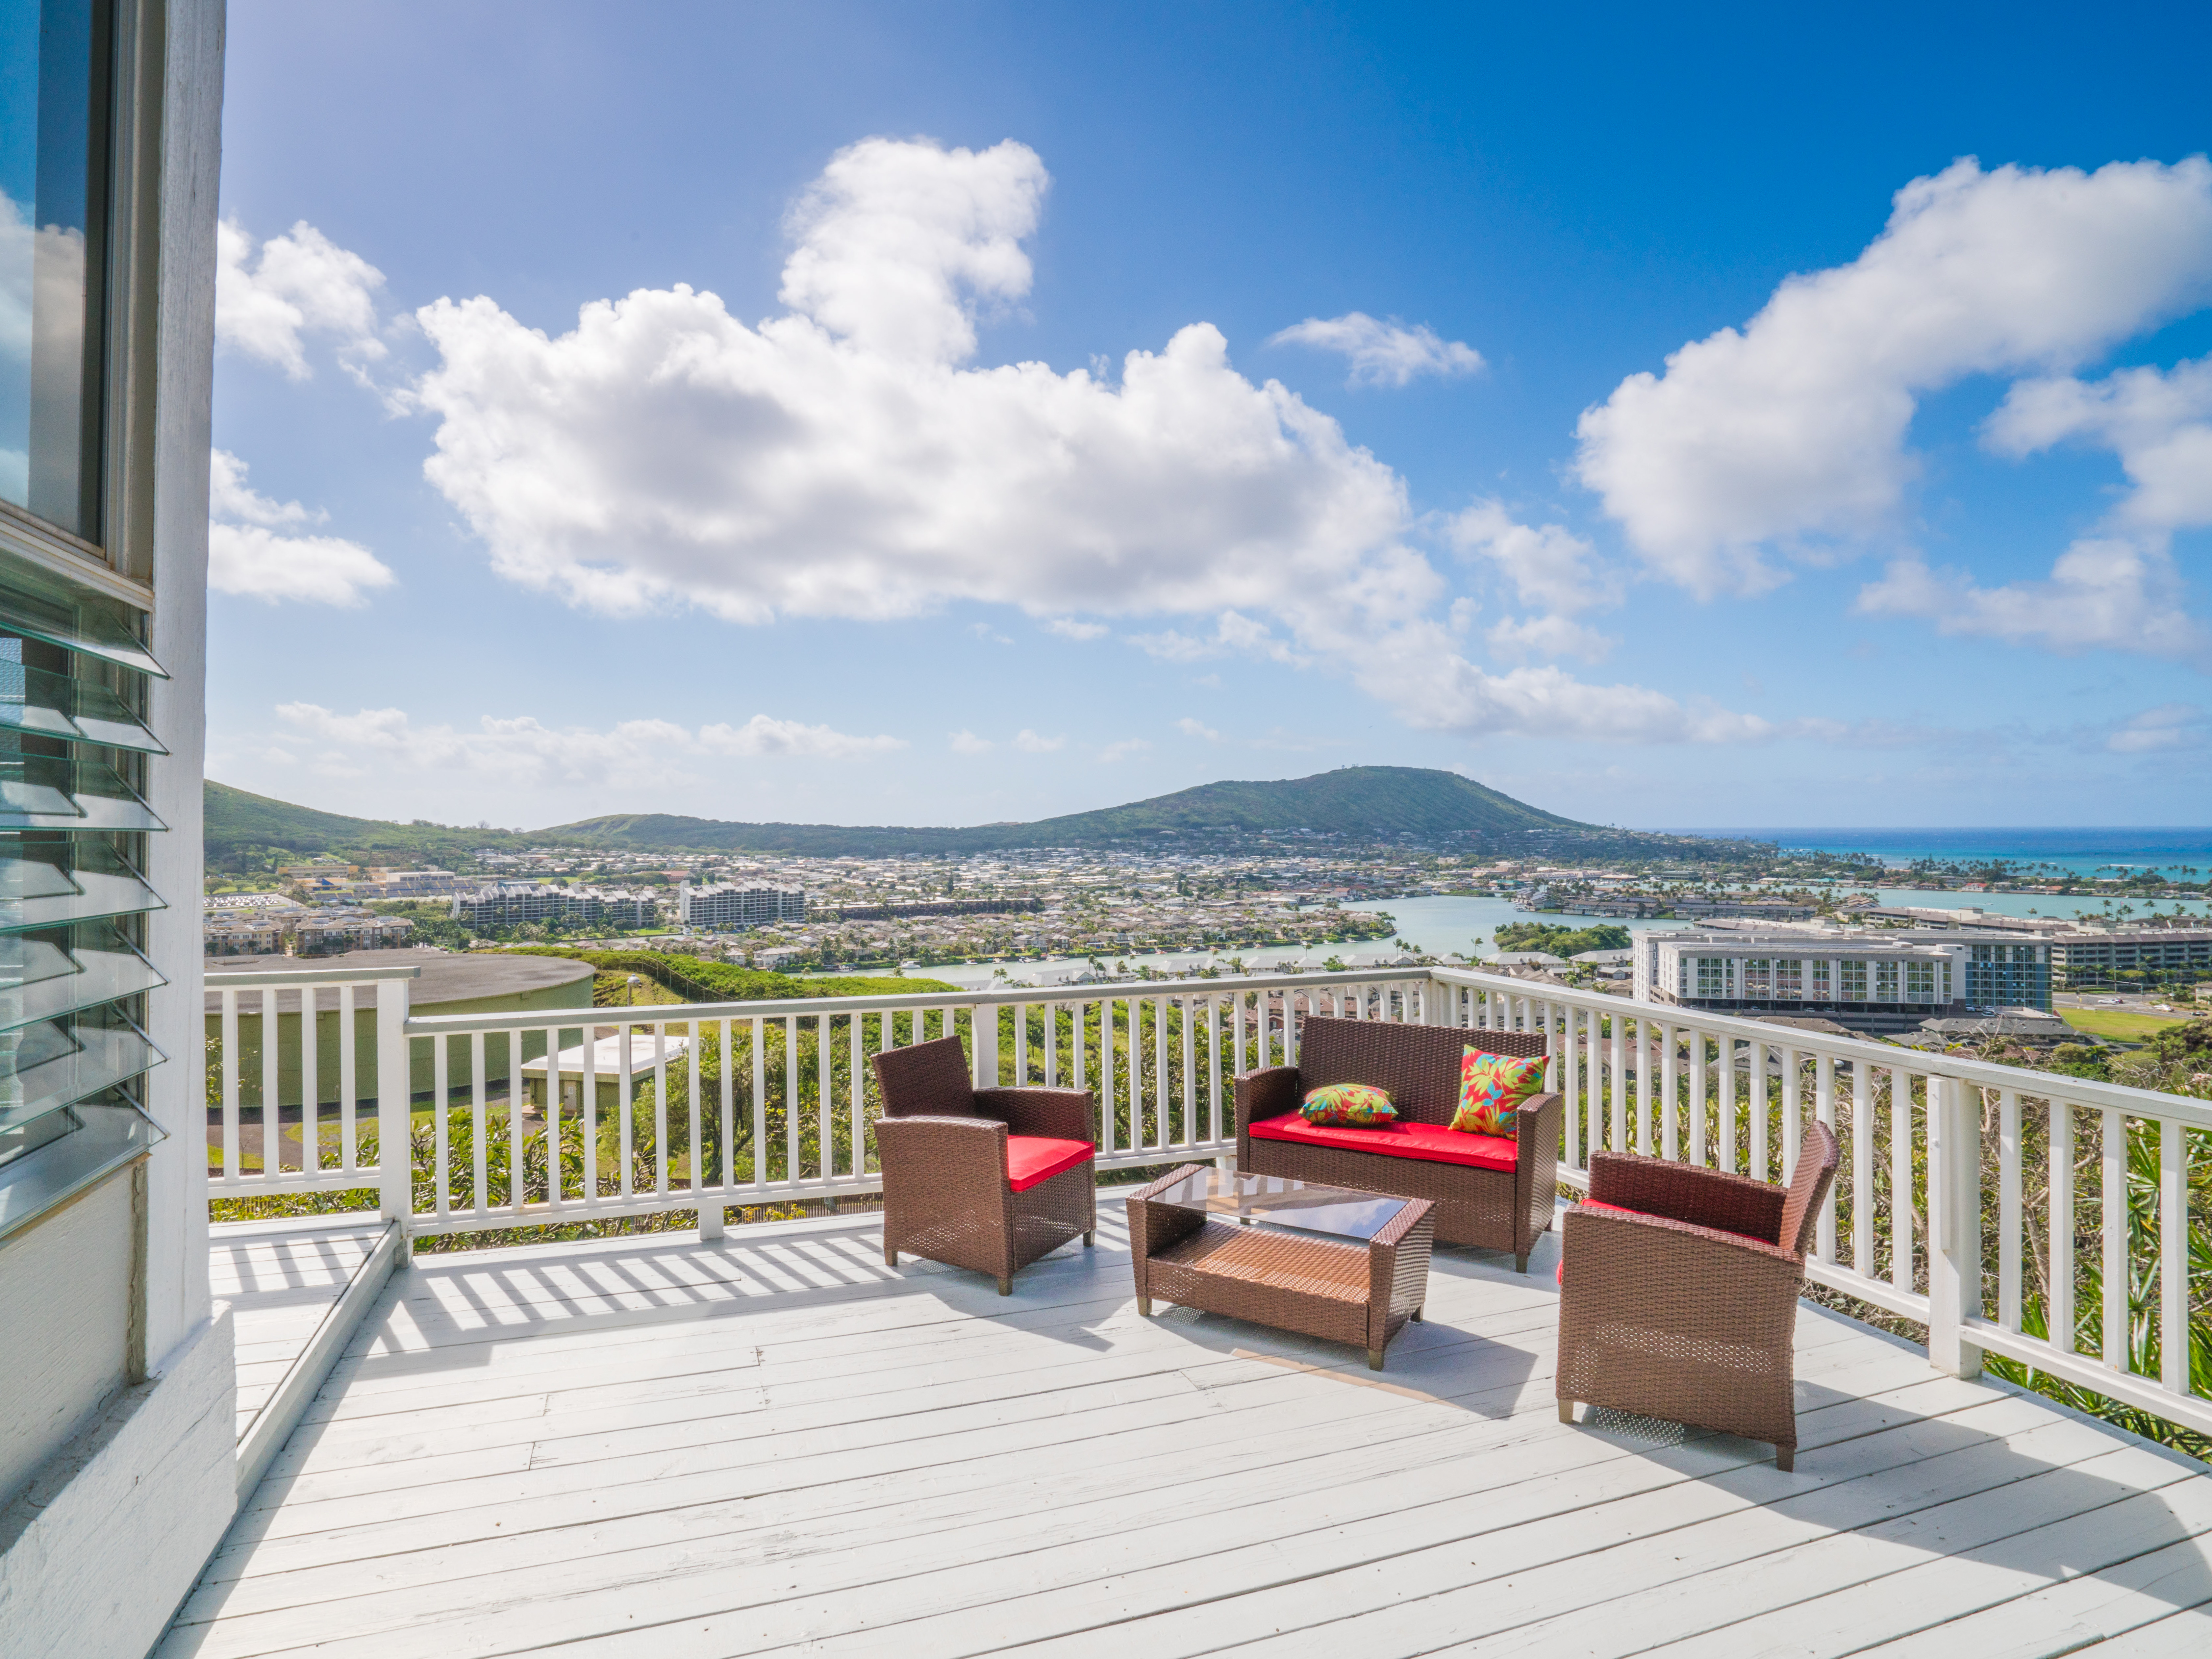 Honolulu HI Vacation Rental Aloha! This stunning